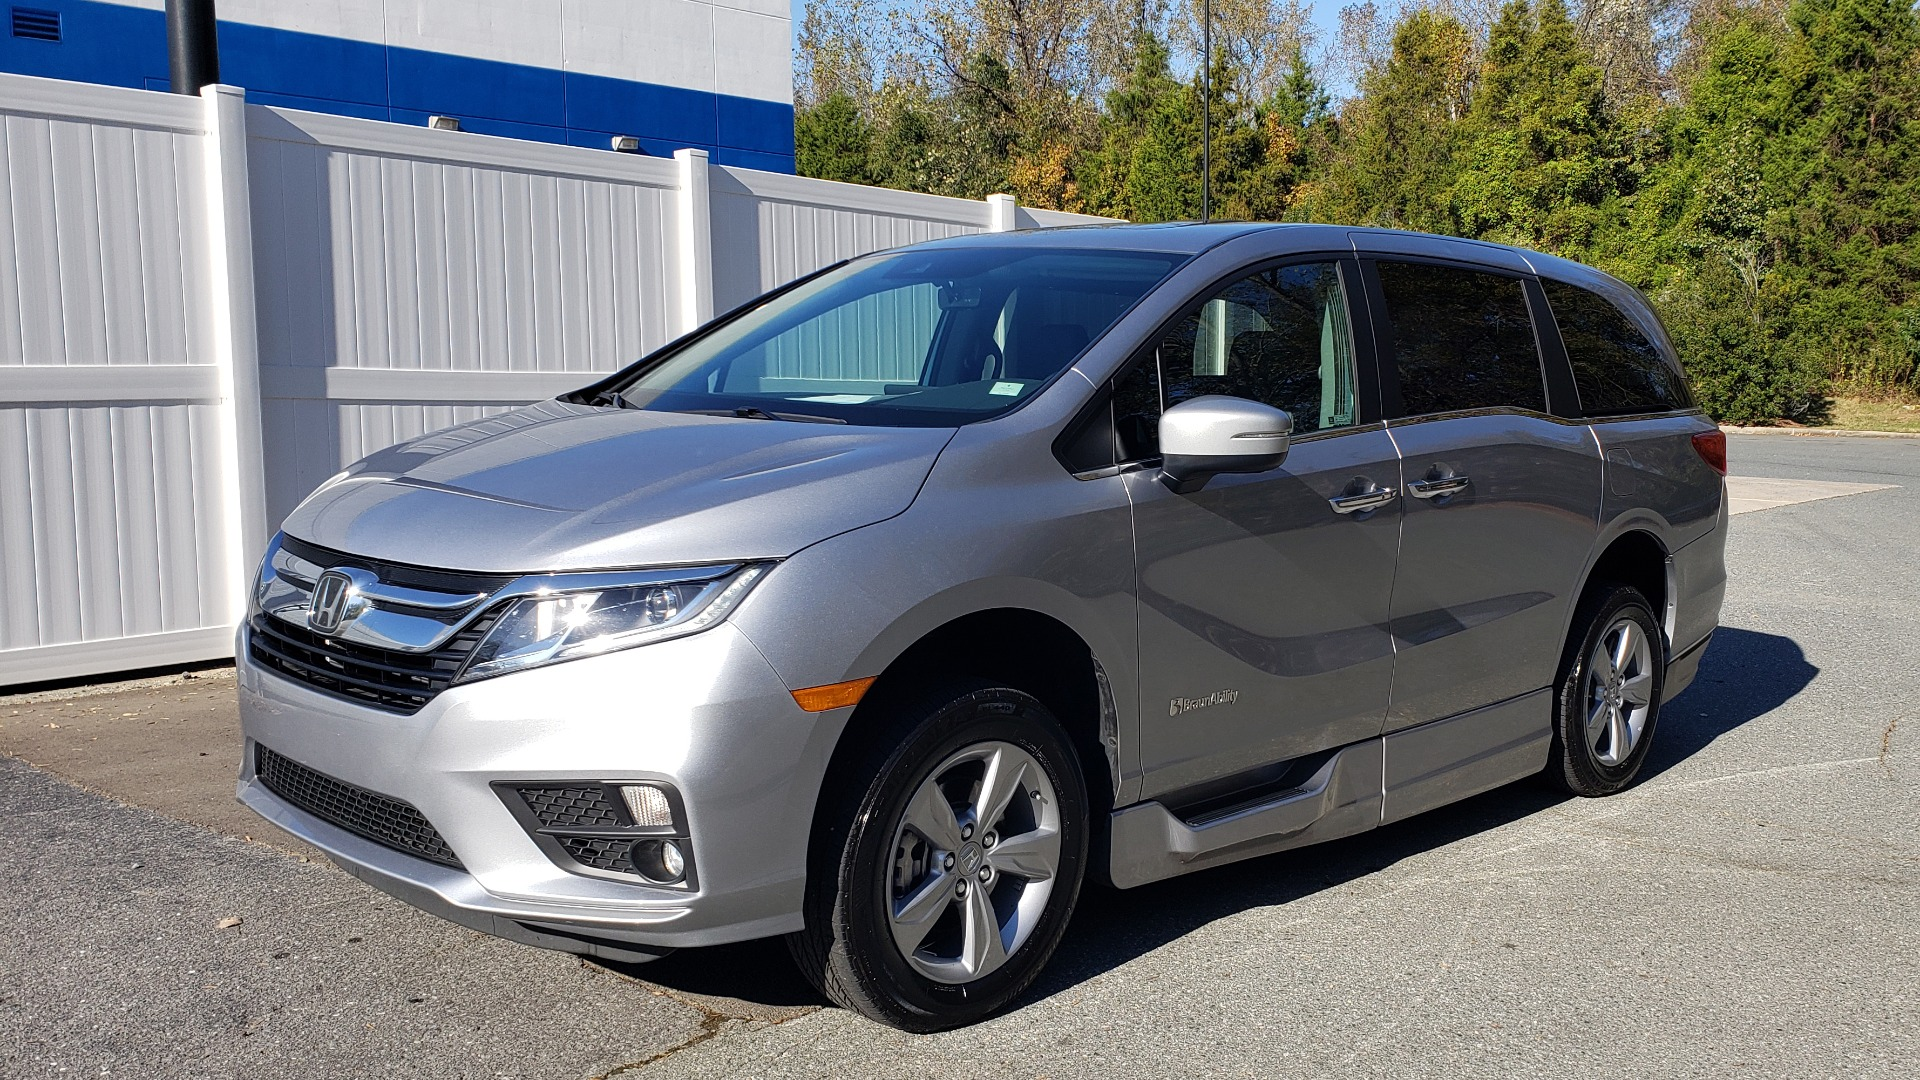 Used 2019 Honda ODYSSEY EX-L BRAUNABILITY / NAV / RES / LKA / BLUE-RAY / SUNROOF / REARVIEW for sale Sold at Formula Imports in Charlotte NC 28227 1